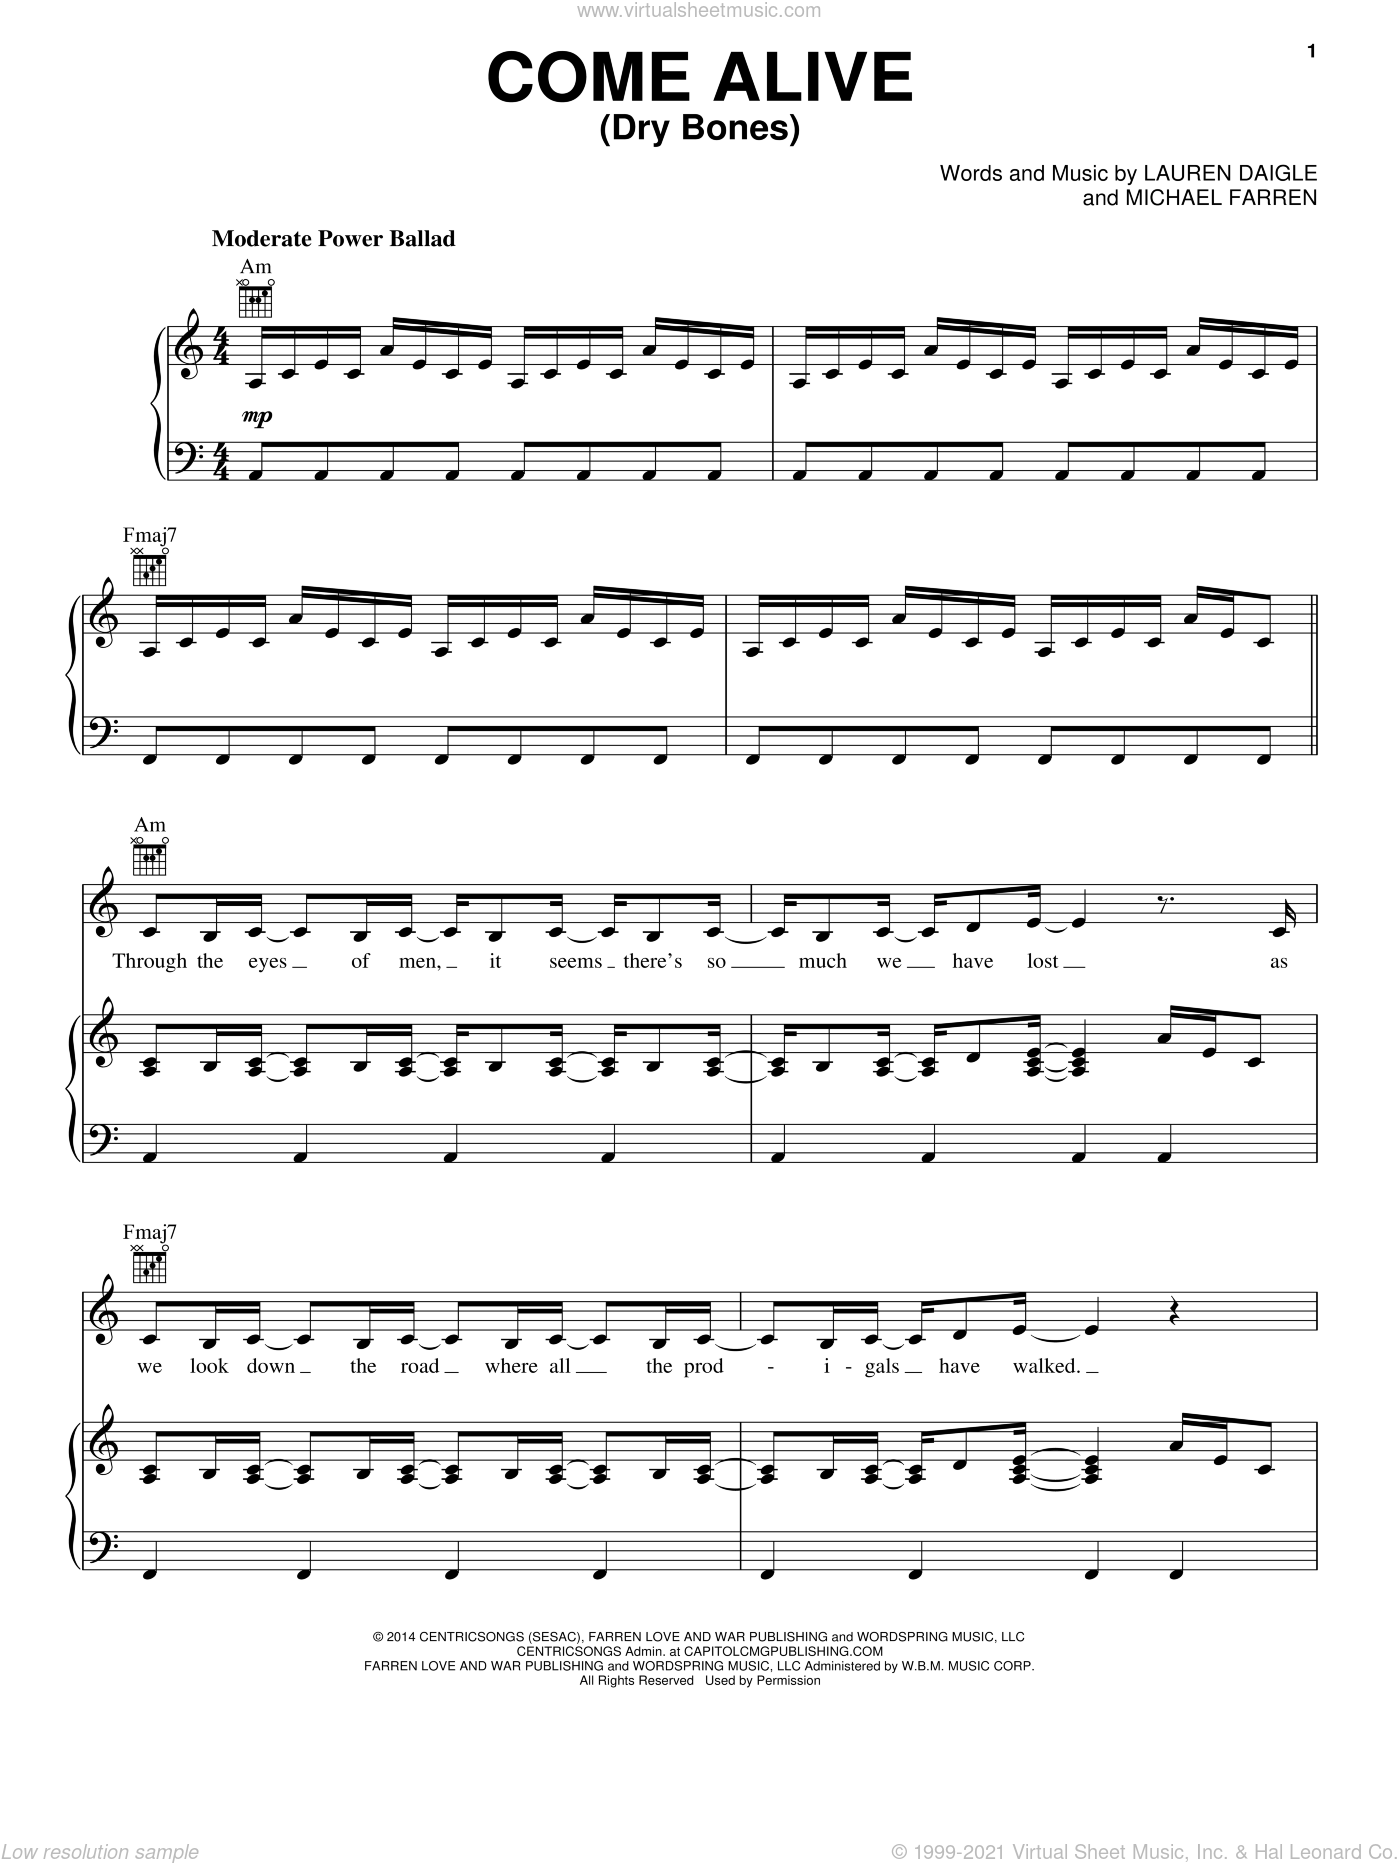 Come Alive (Dry Bones) sheet music for voice, piano or guitar by Lauren Daigle and Michael Farren, intermediate skill level